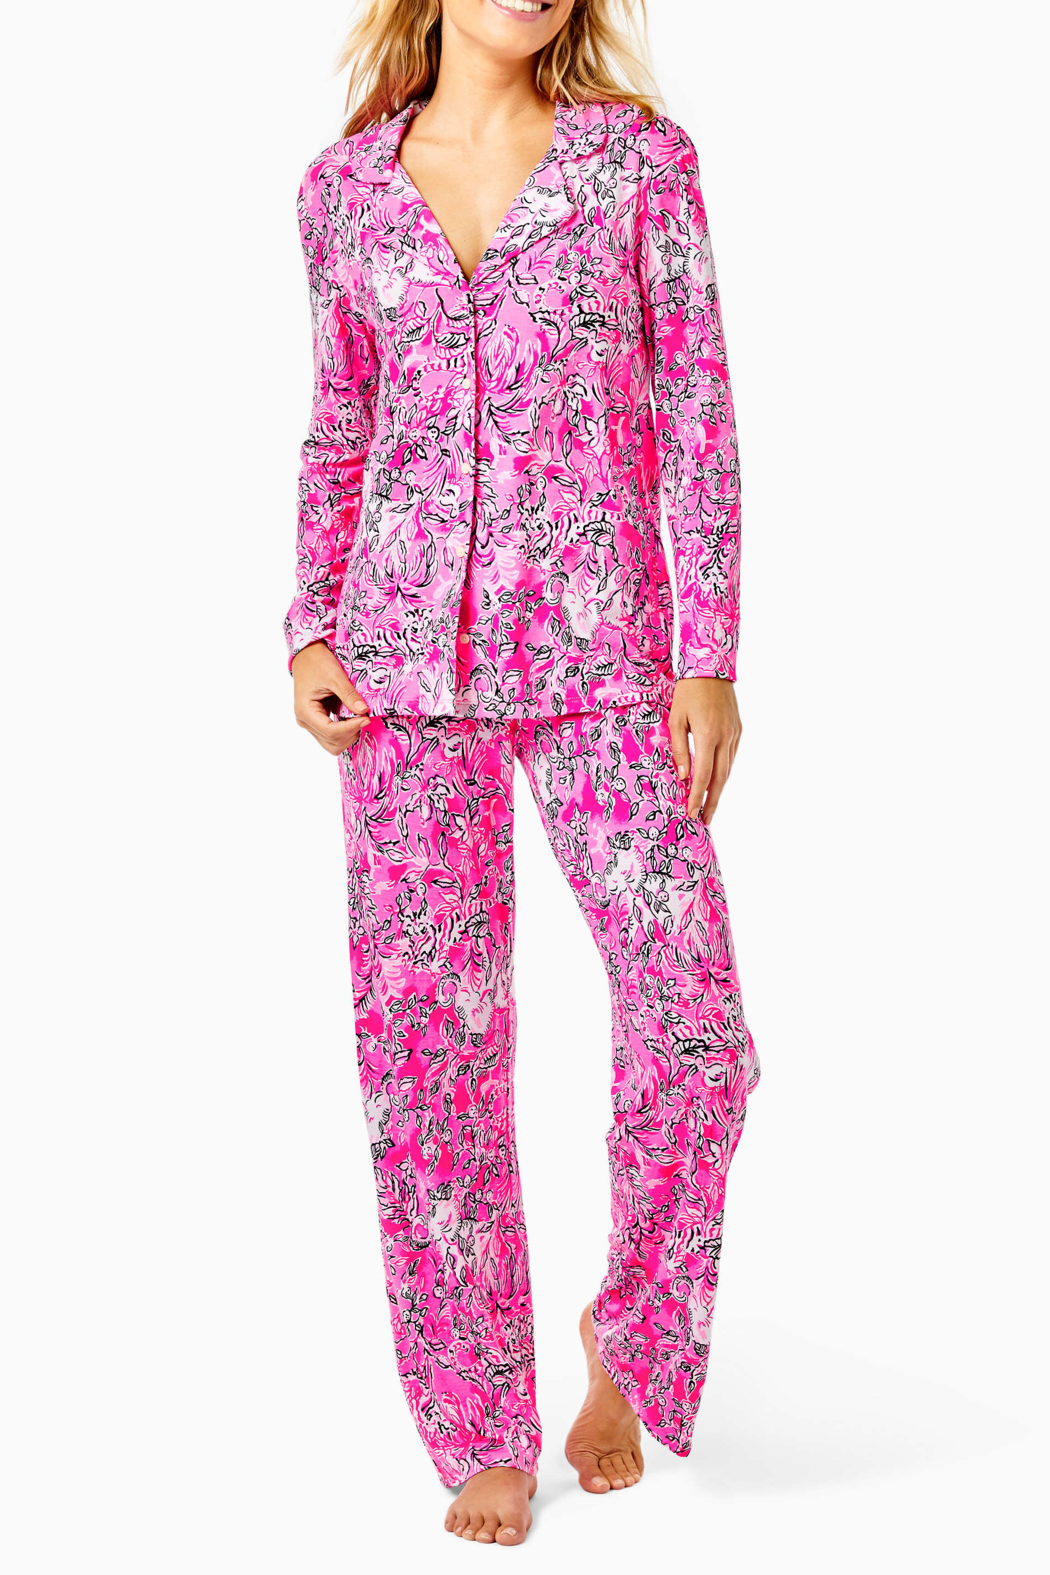 Lilly Pulitzer  PJ Knit Button-Up Top - Back Cropped Image